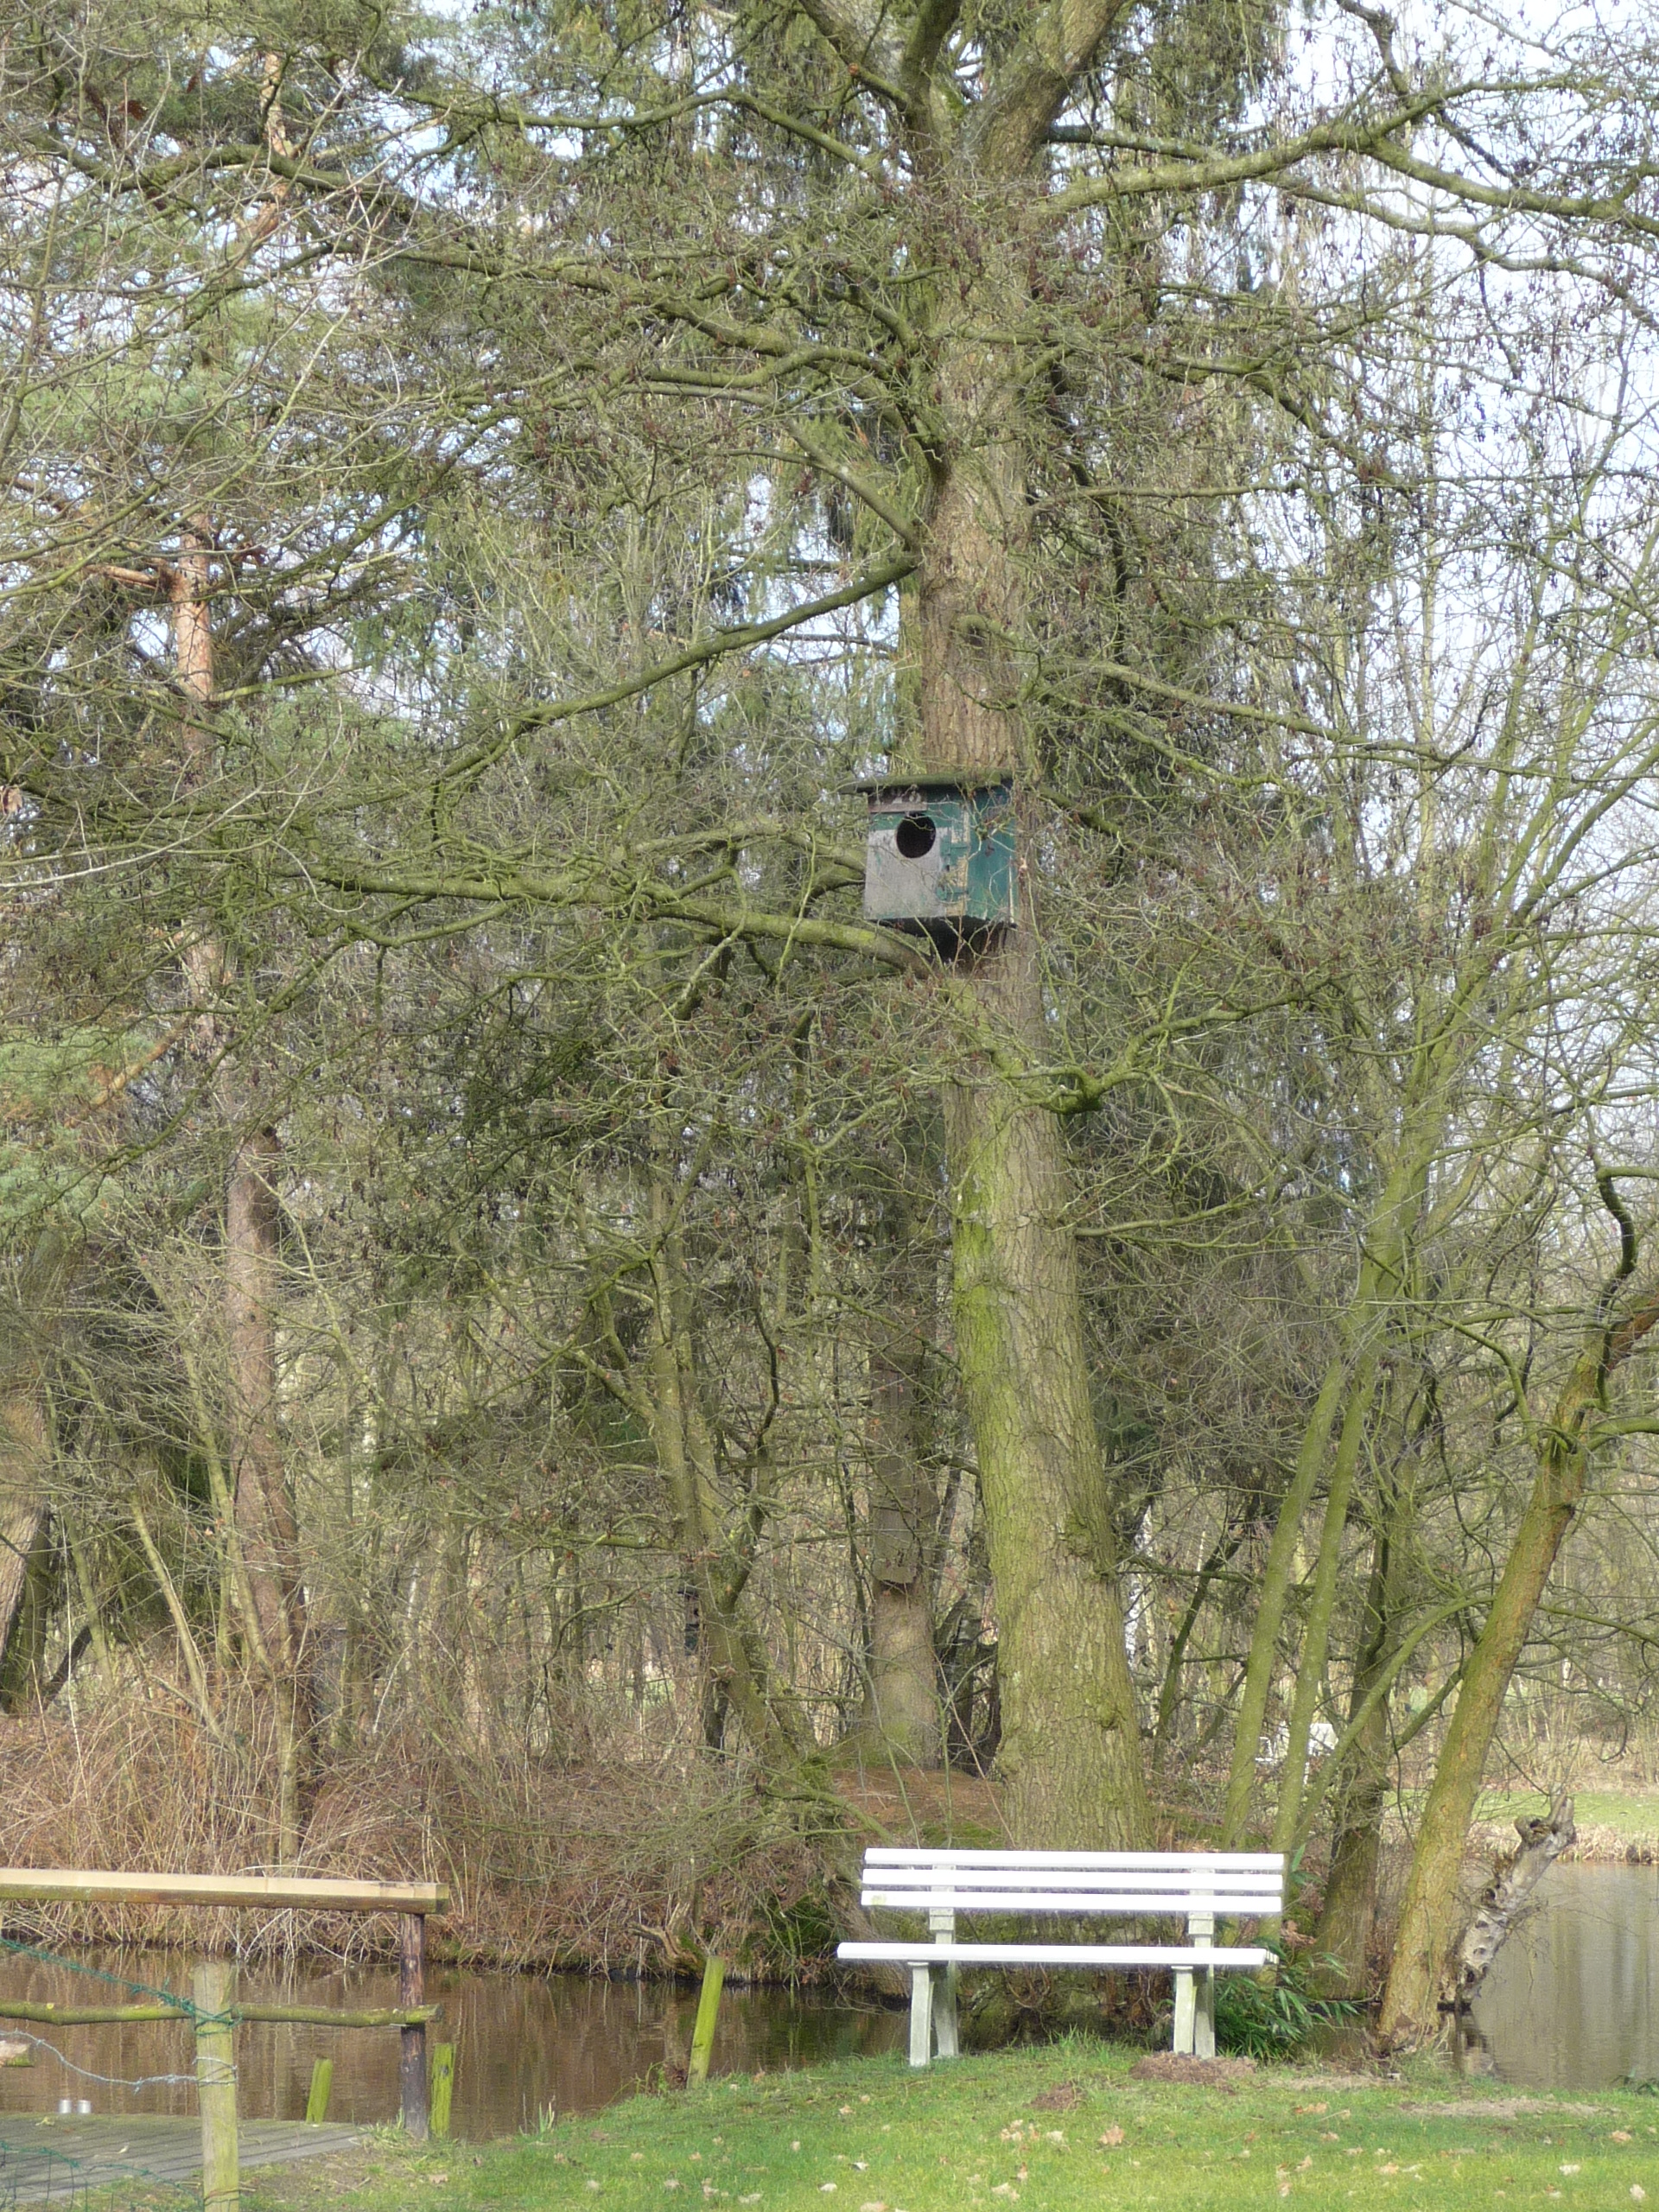 The other half they used to build giant birdboxes